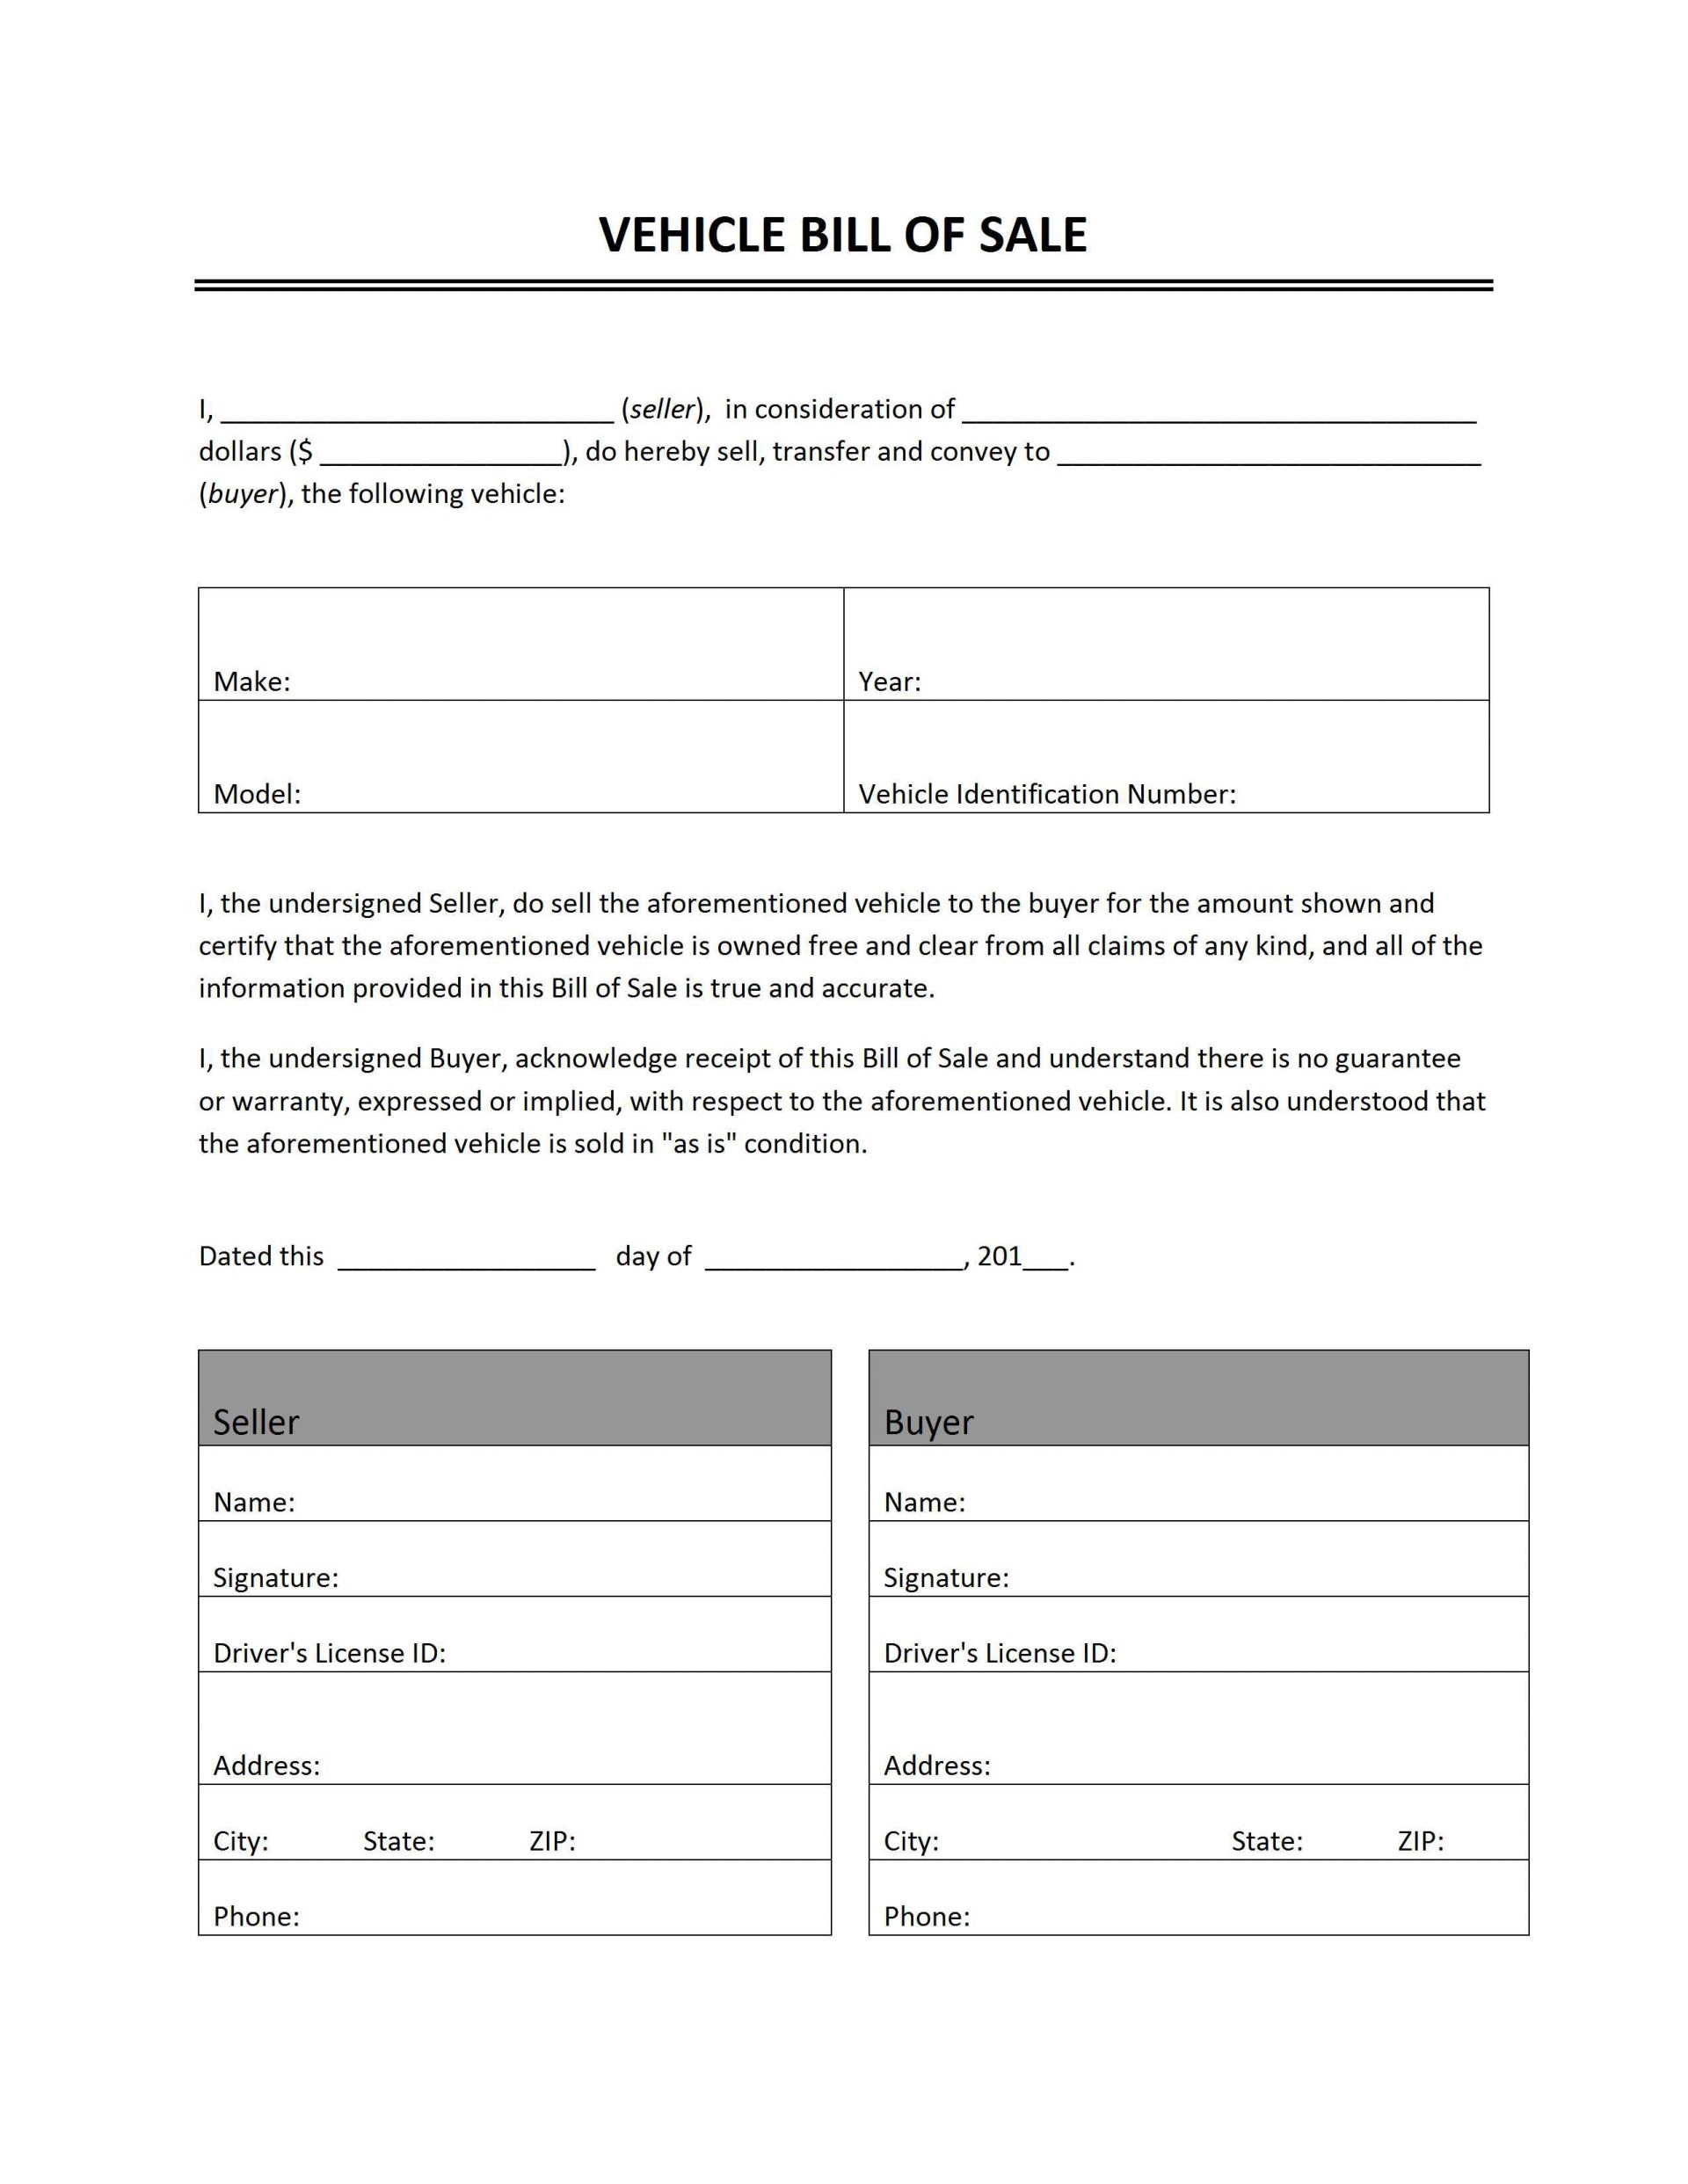 000 Impressive Automobile Bill Of Sale Template High Definition  Word Vehicle Fillable Pdf Texa With Notary1920